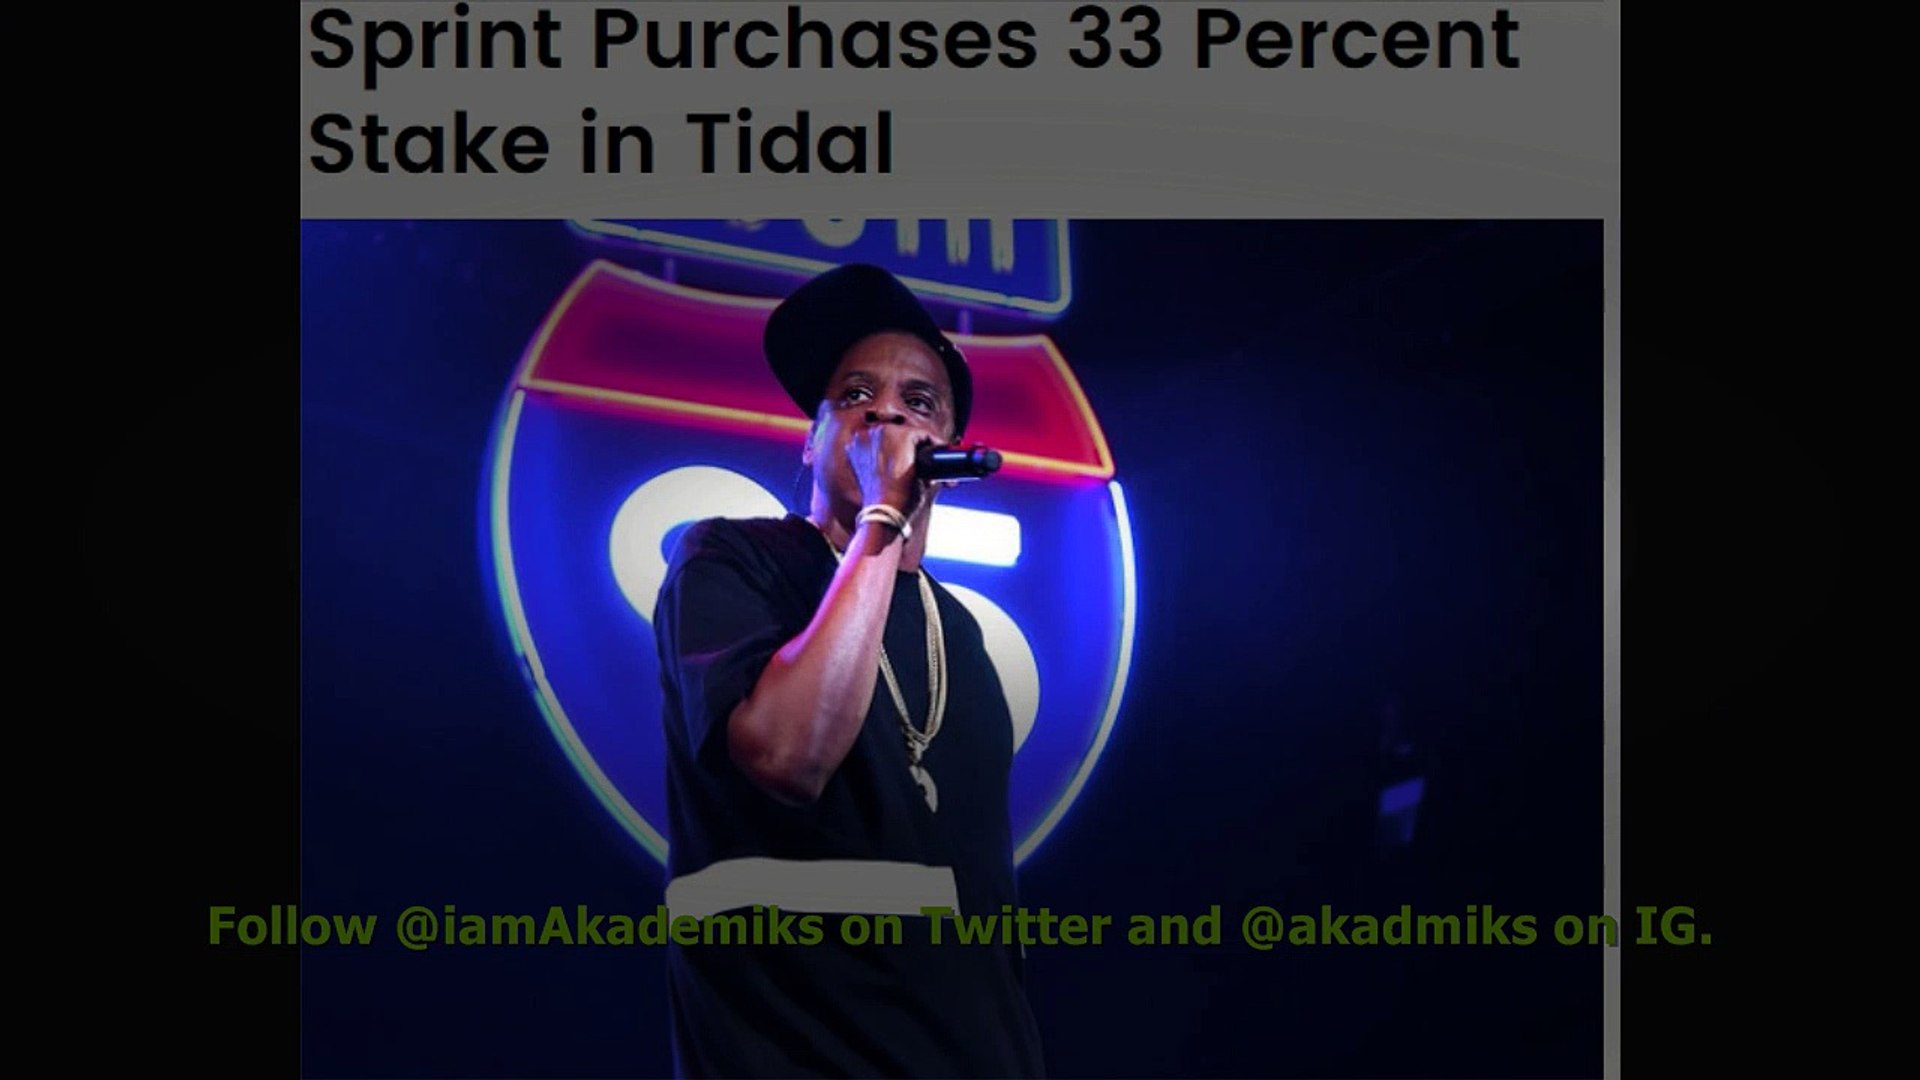 Sprint Buys 33% Of Jay Z's Tidal For $200 Million, They Will Offer Tidal To Their 45 Million Cu